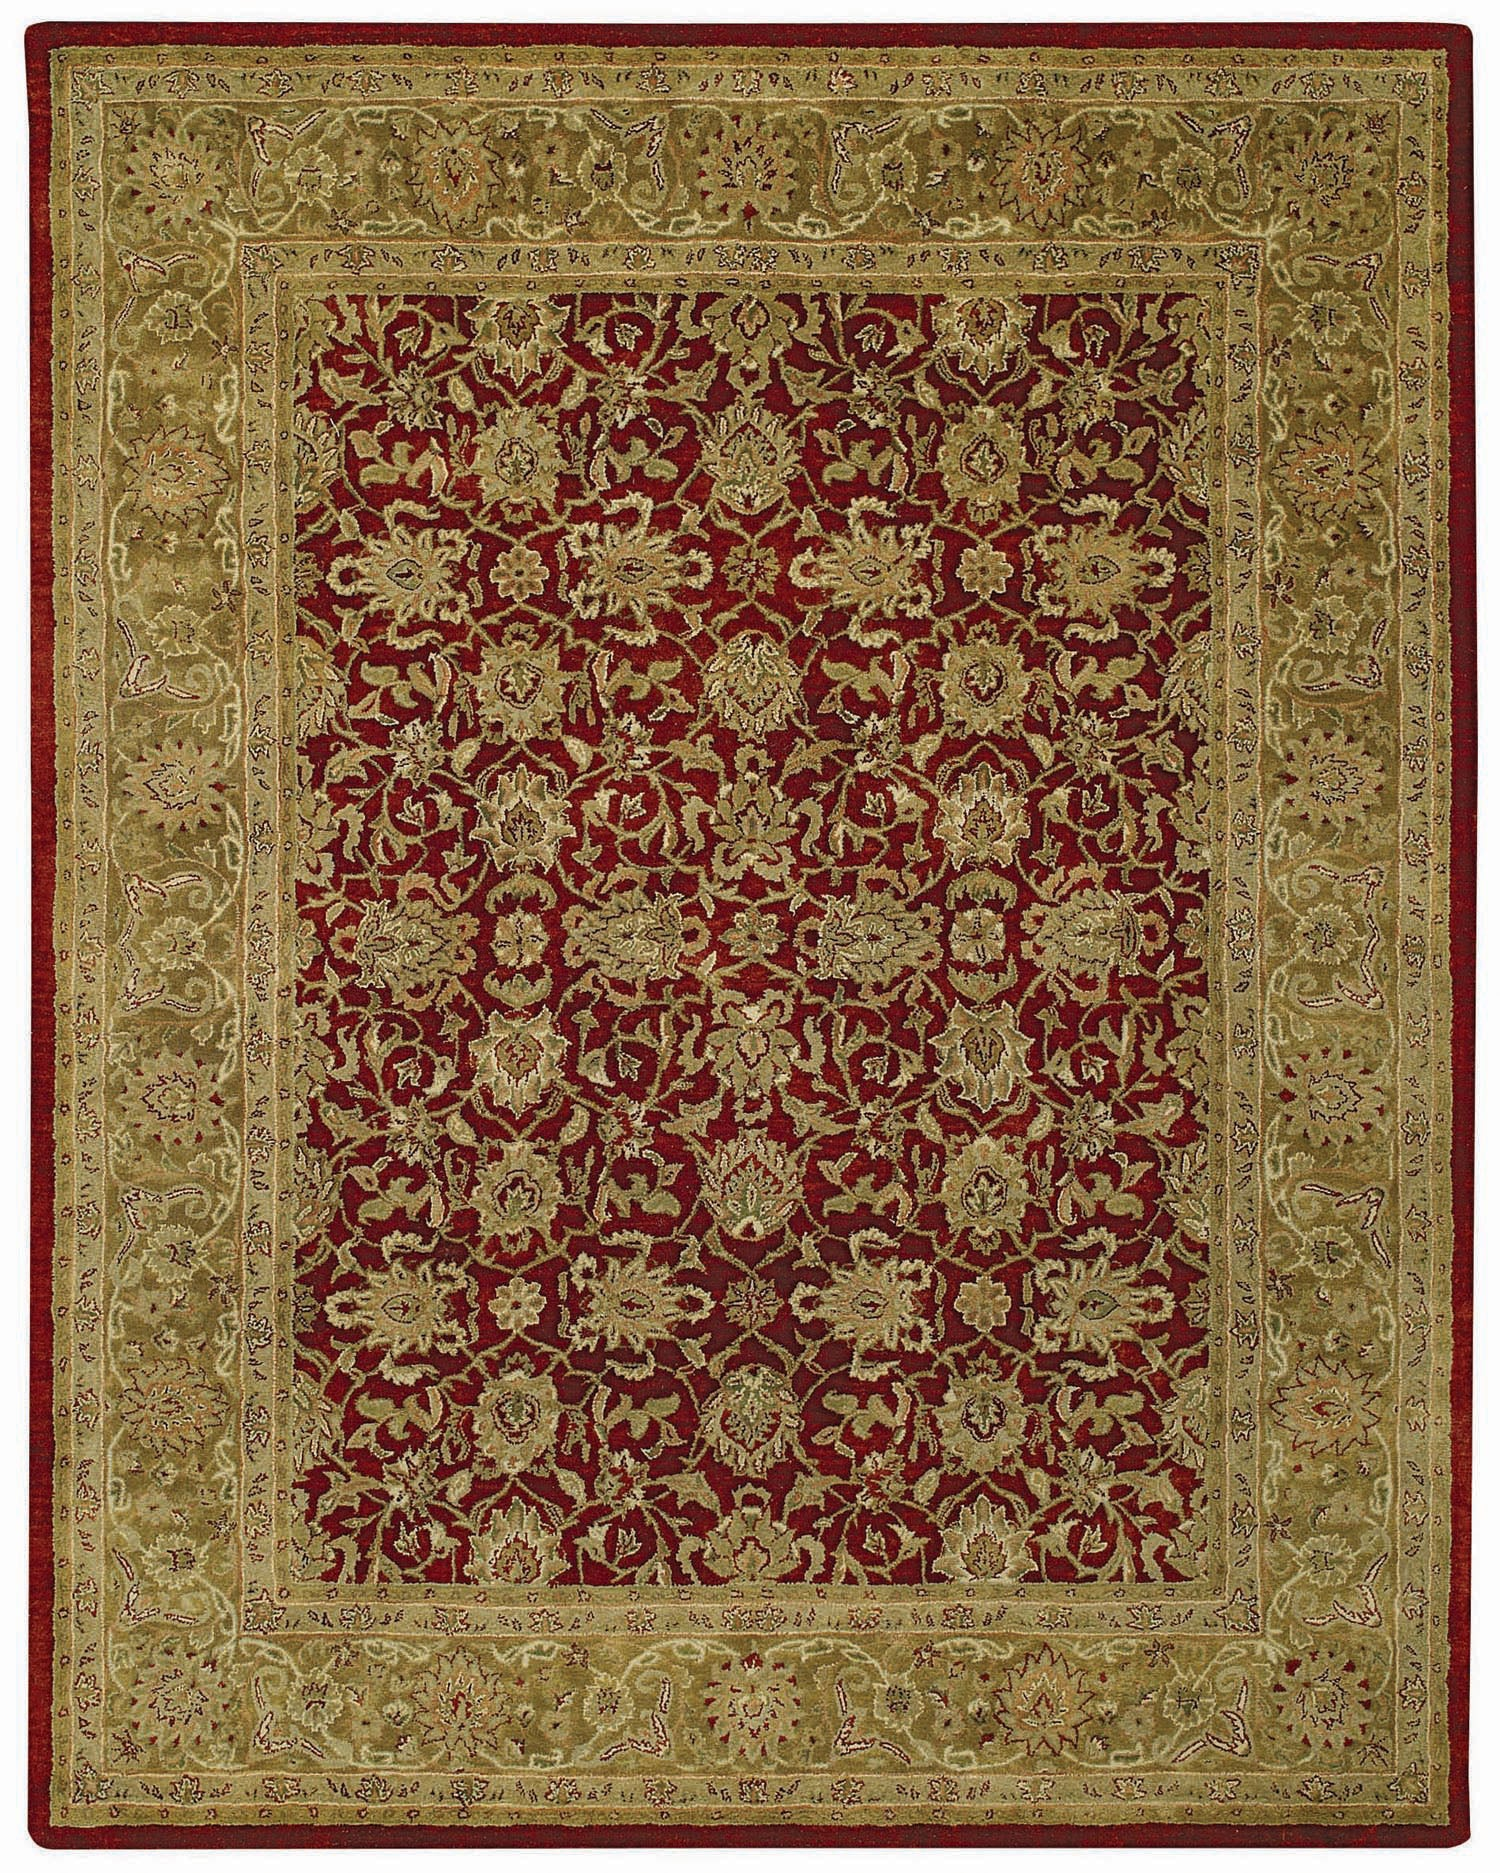 Capel Orinda Meshed 9212 Red 525 Area Rug main image